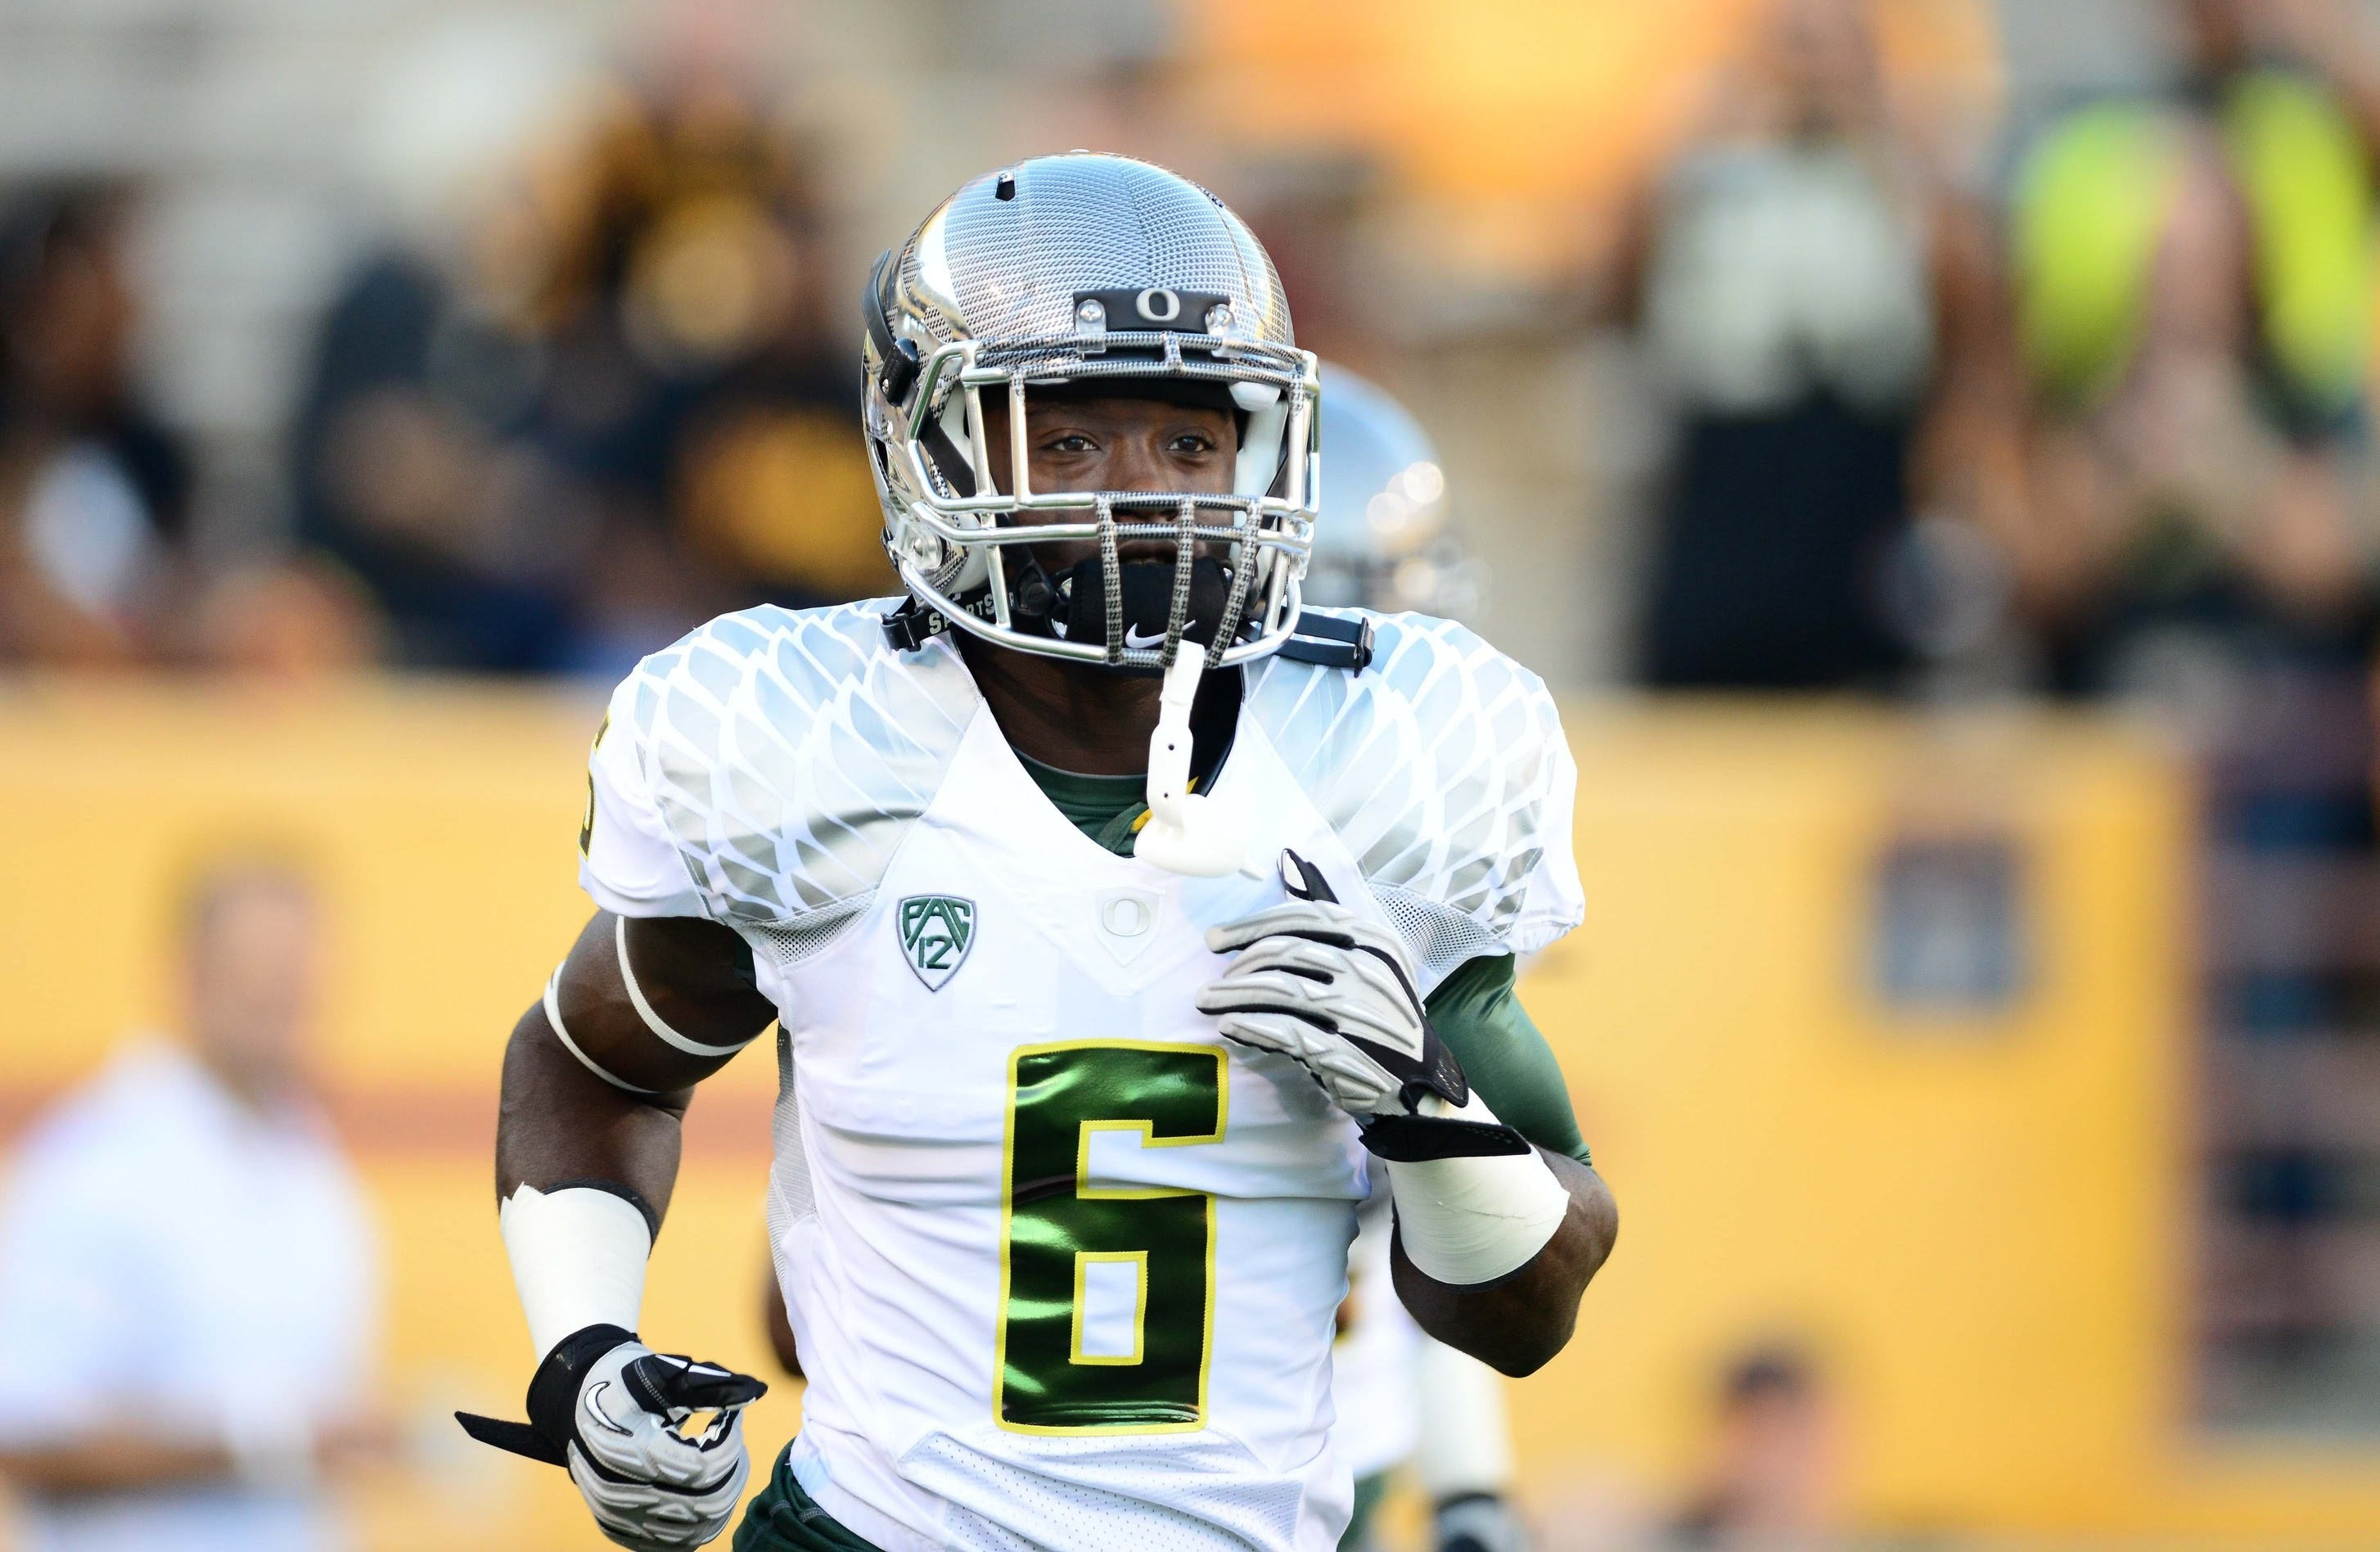 subs deanthony thomas - HD2908×1896